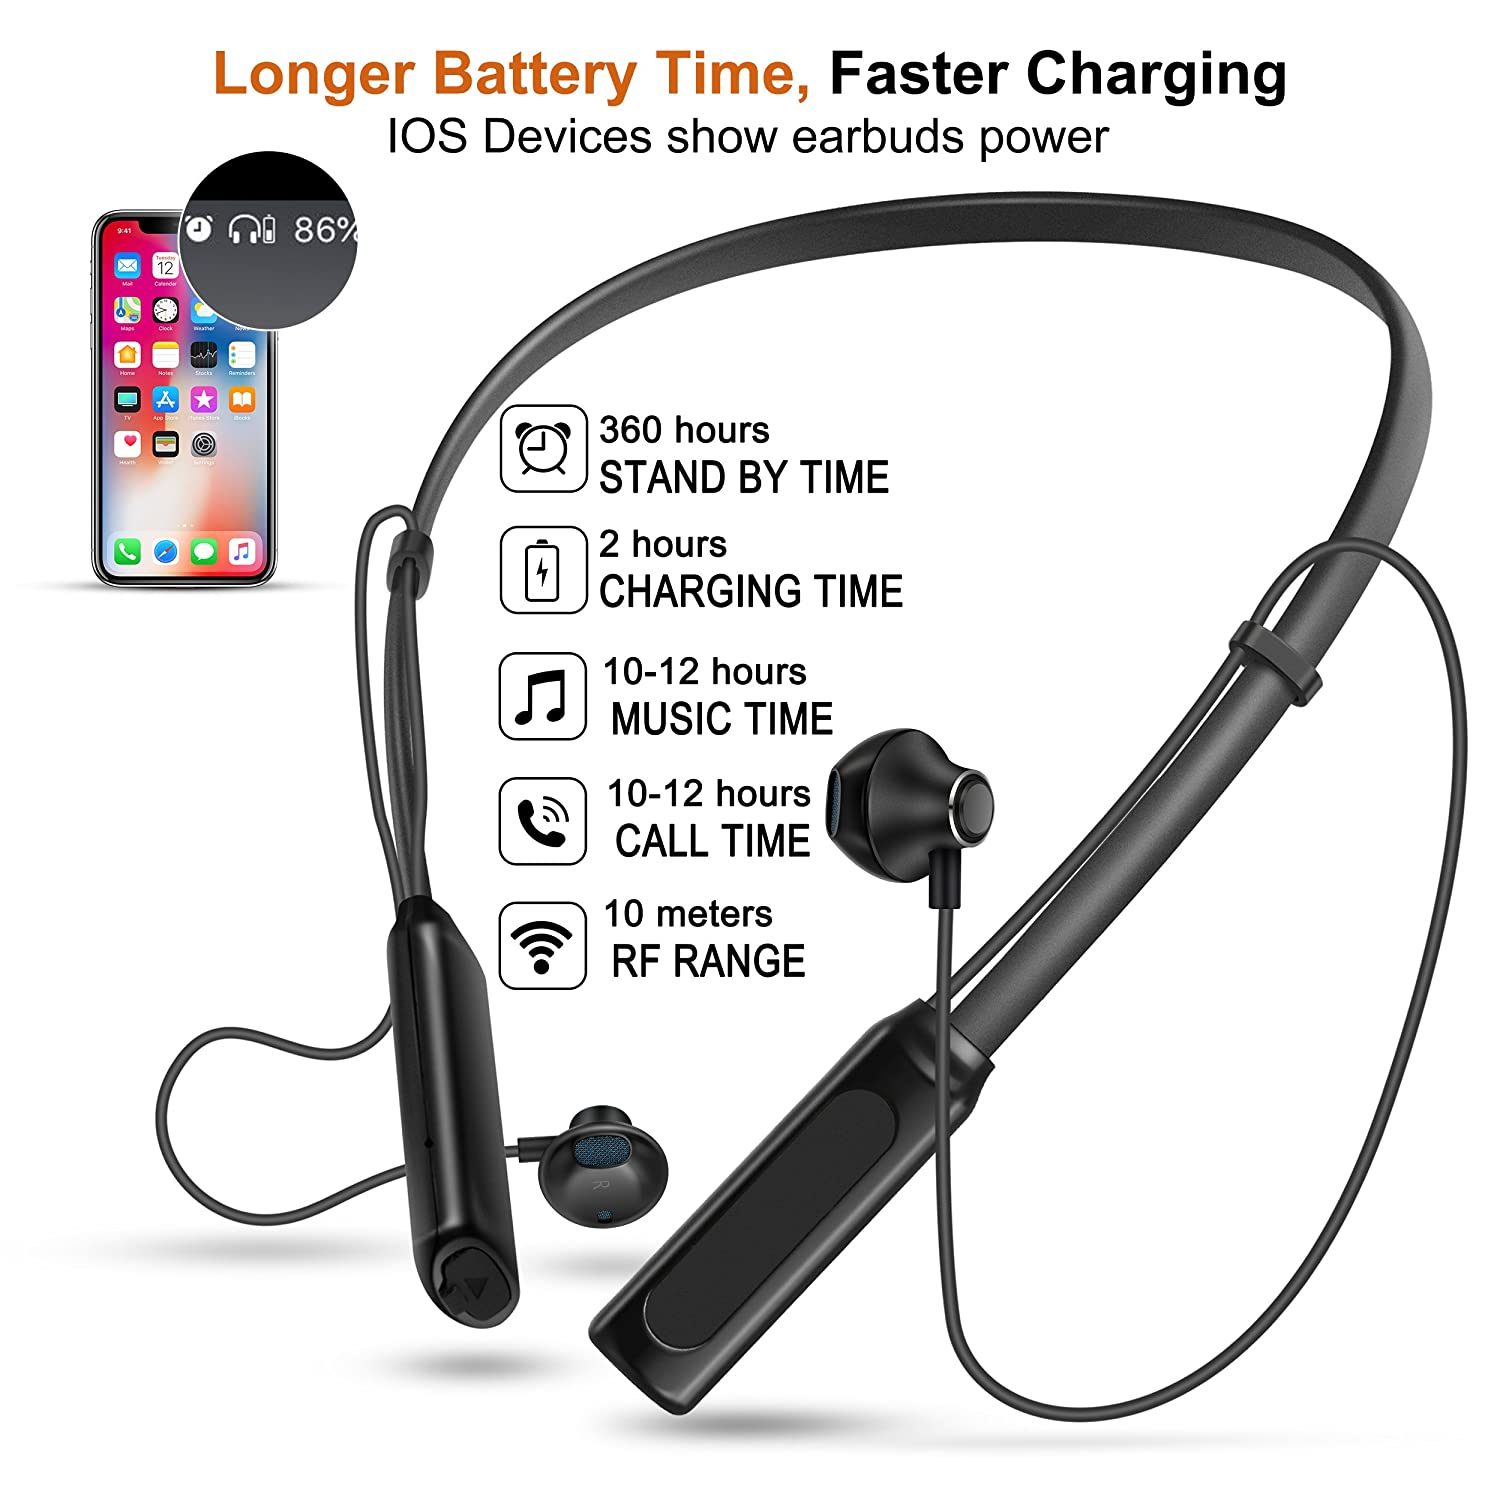 Wireless Bluetooth Headphones, Sxkaxlx V4.1 Bluetooth Headphones Neckband, Supre Stereo Noise Cancelling Earbuds,Sweatproof,Longlasting Playtimes Up To 12 Hours Black